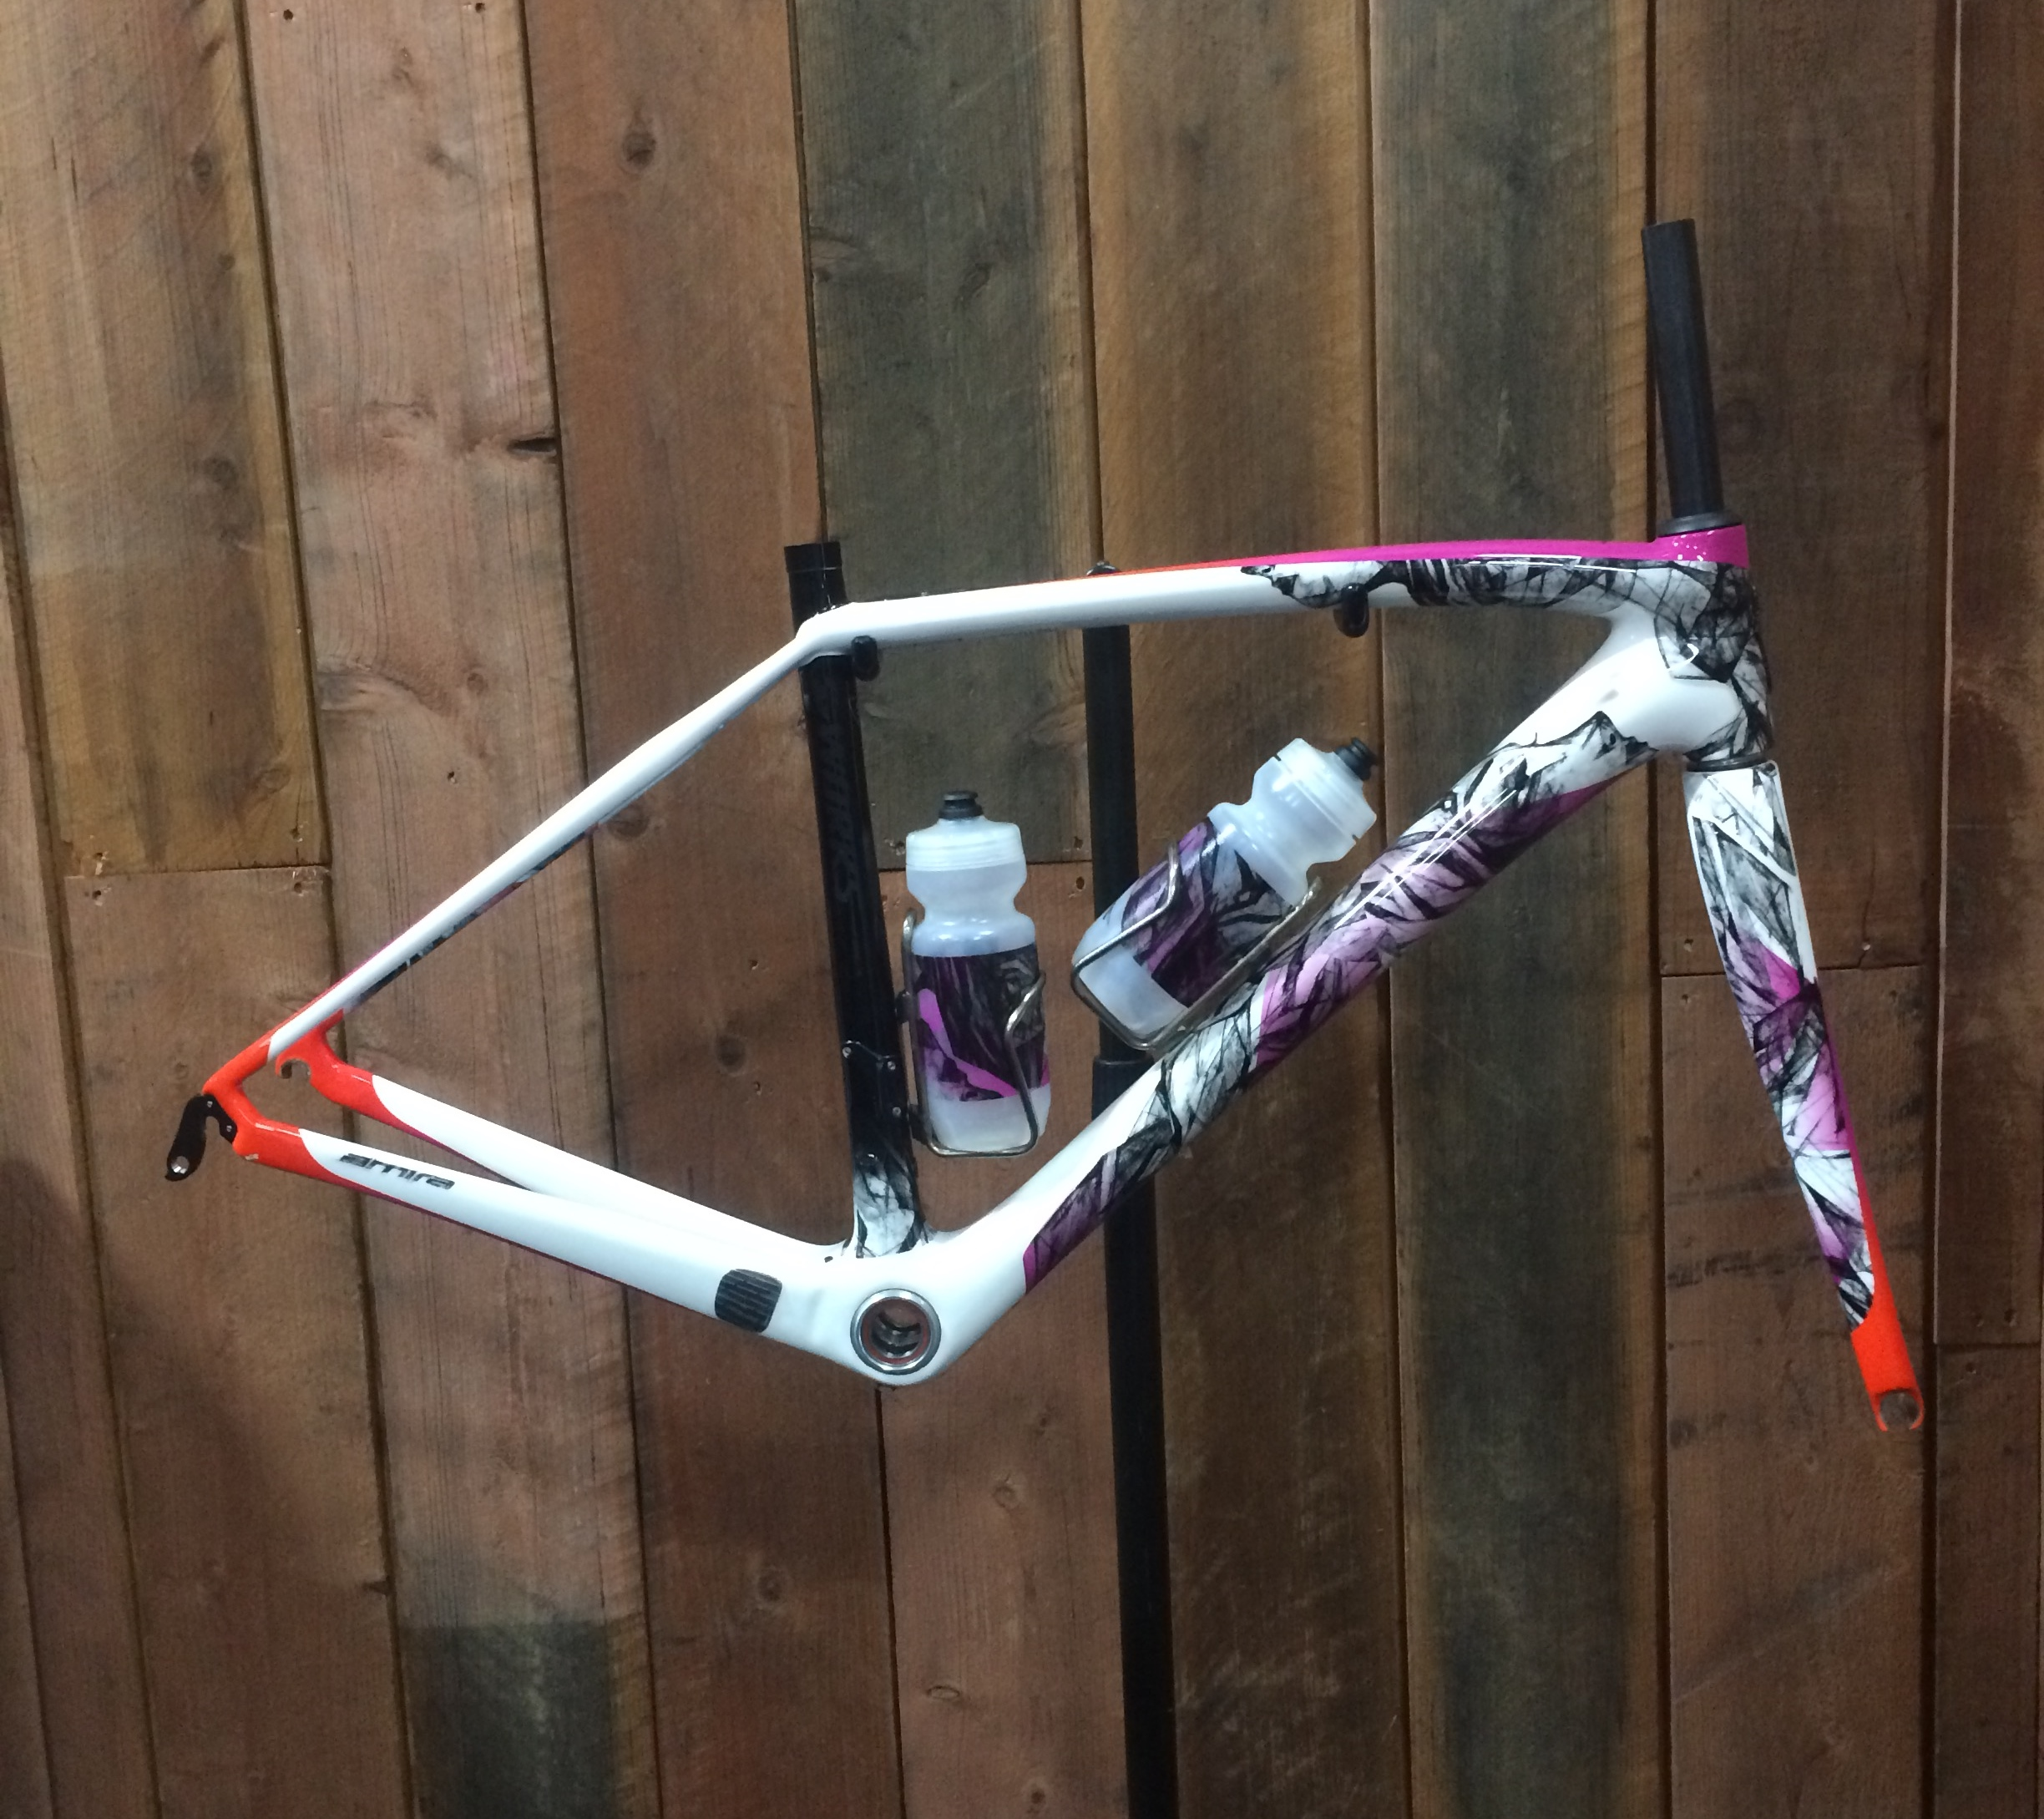 """Special edition S-Works frameset (vogue pattern) """"sadly only available in the USA so I'll have to be content to just drool into my keyboard at this one!"""" said Verita Stewart http://www.specialized.com/us/en/bikes/womens-road/sbuild-road-womens/sbuild-sworks-amira-sl4-frameset"""